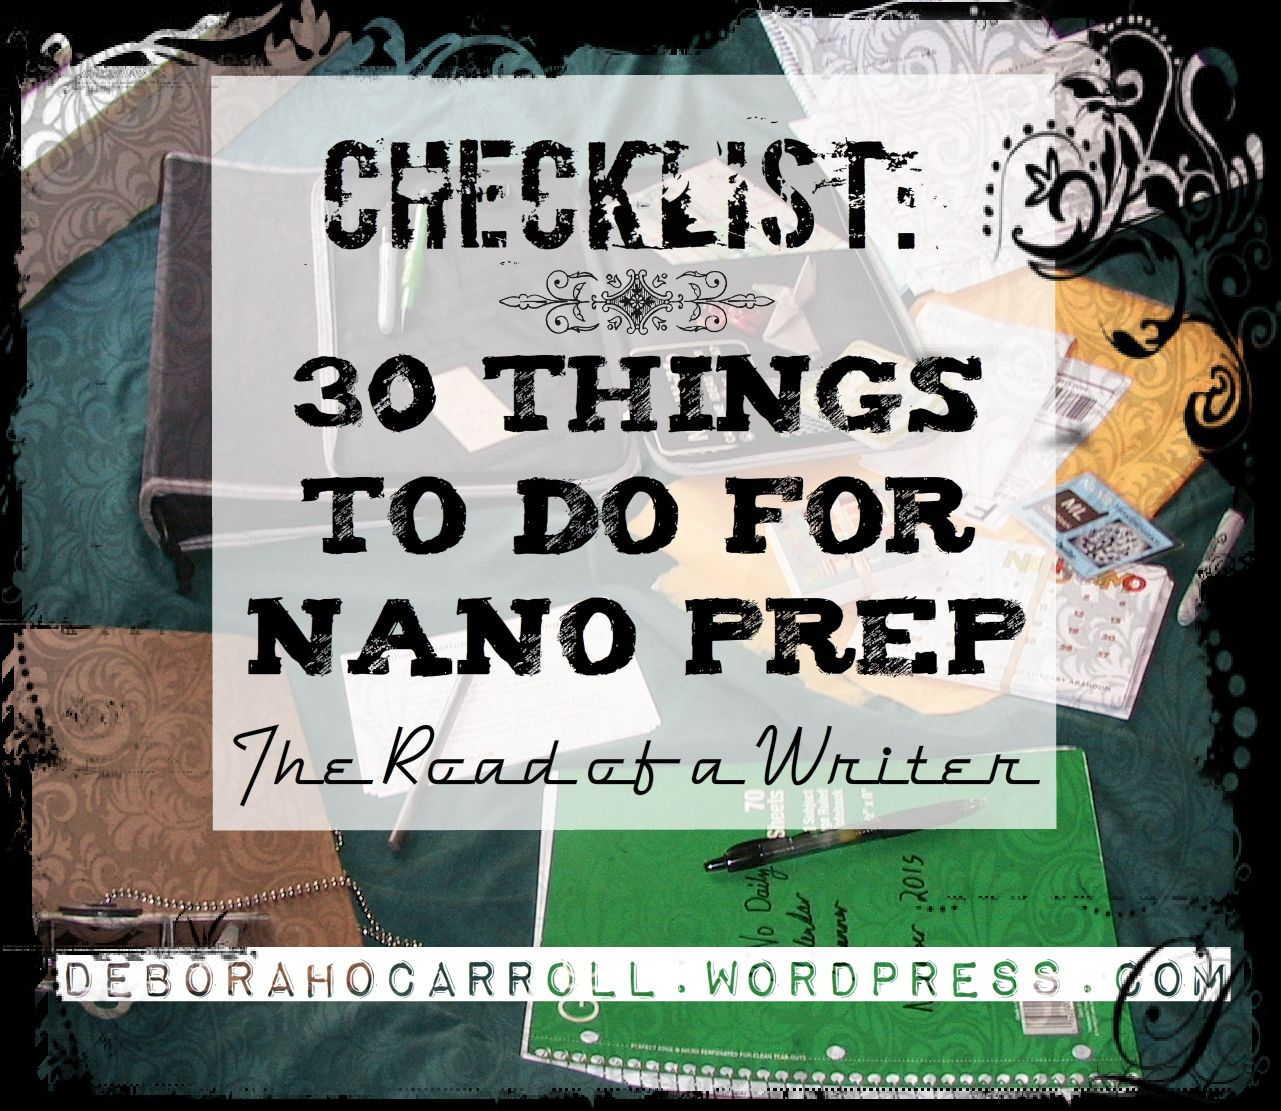 Checklist: 30 Things to do for NaNo Prep #NaNoWriMo #writers https://deborahocarroll.wordpress.com/2015/10/15/checklist-30-things-to-do-for-nano-prep/